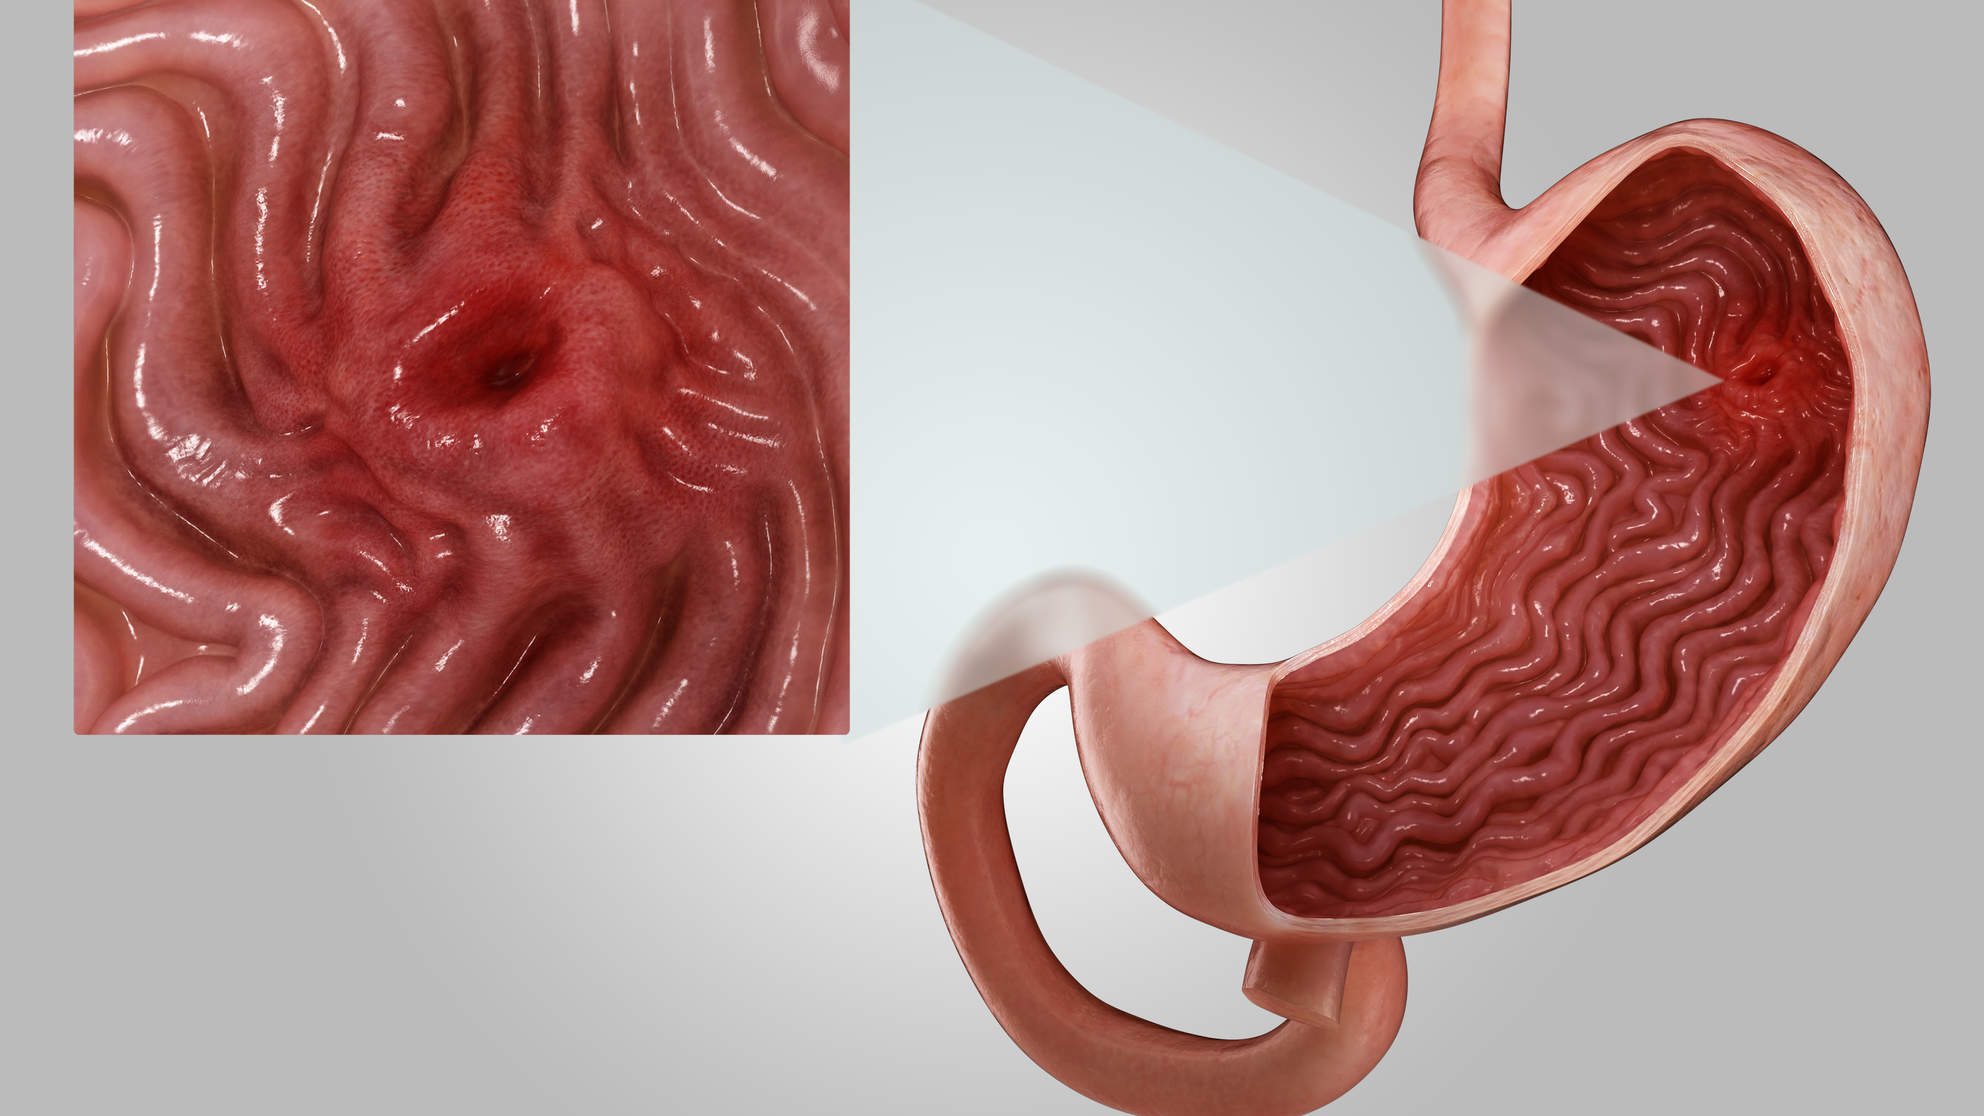 stomach-ulcers